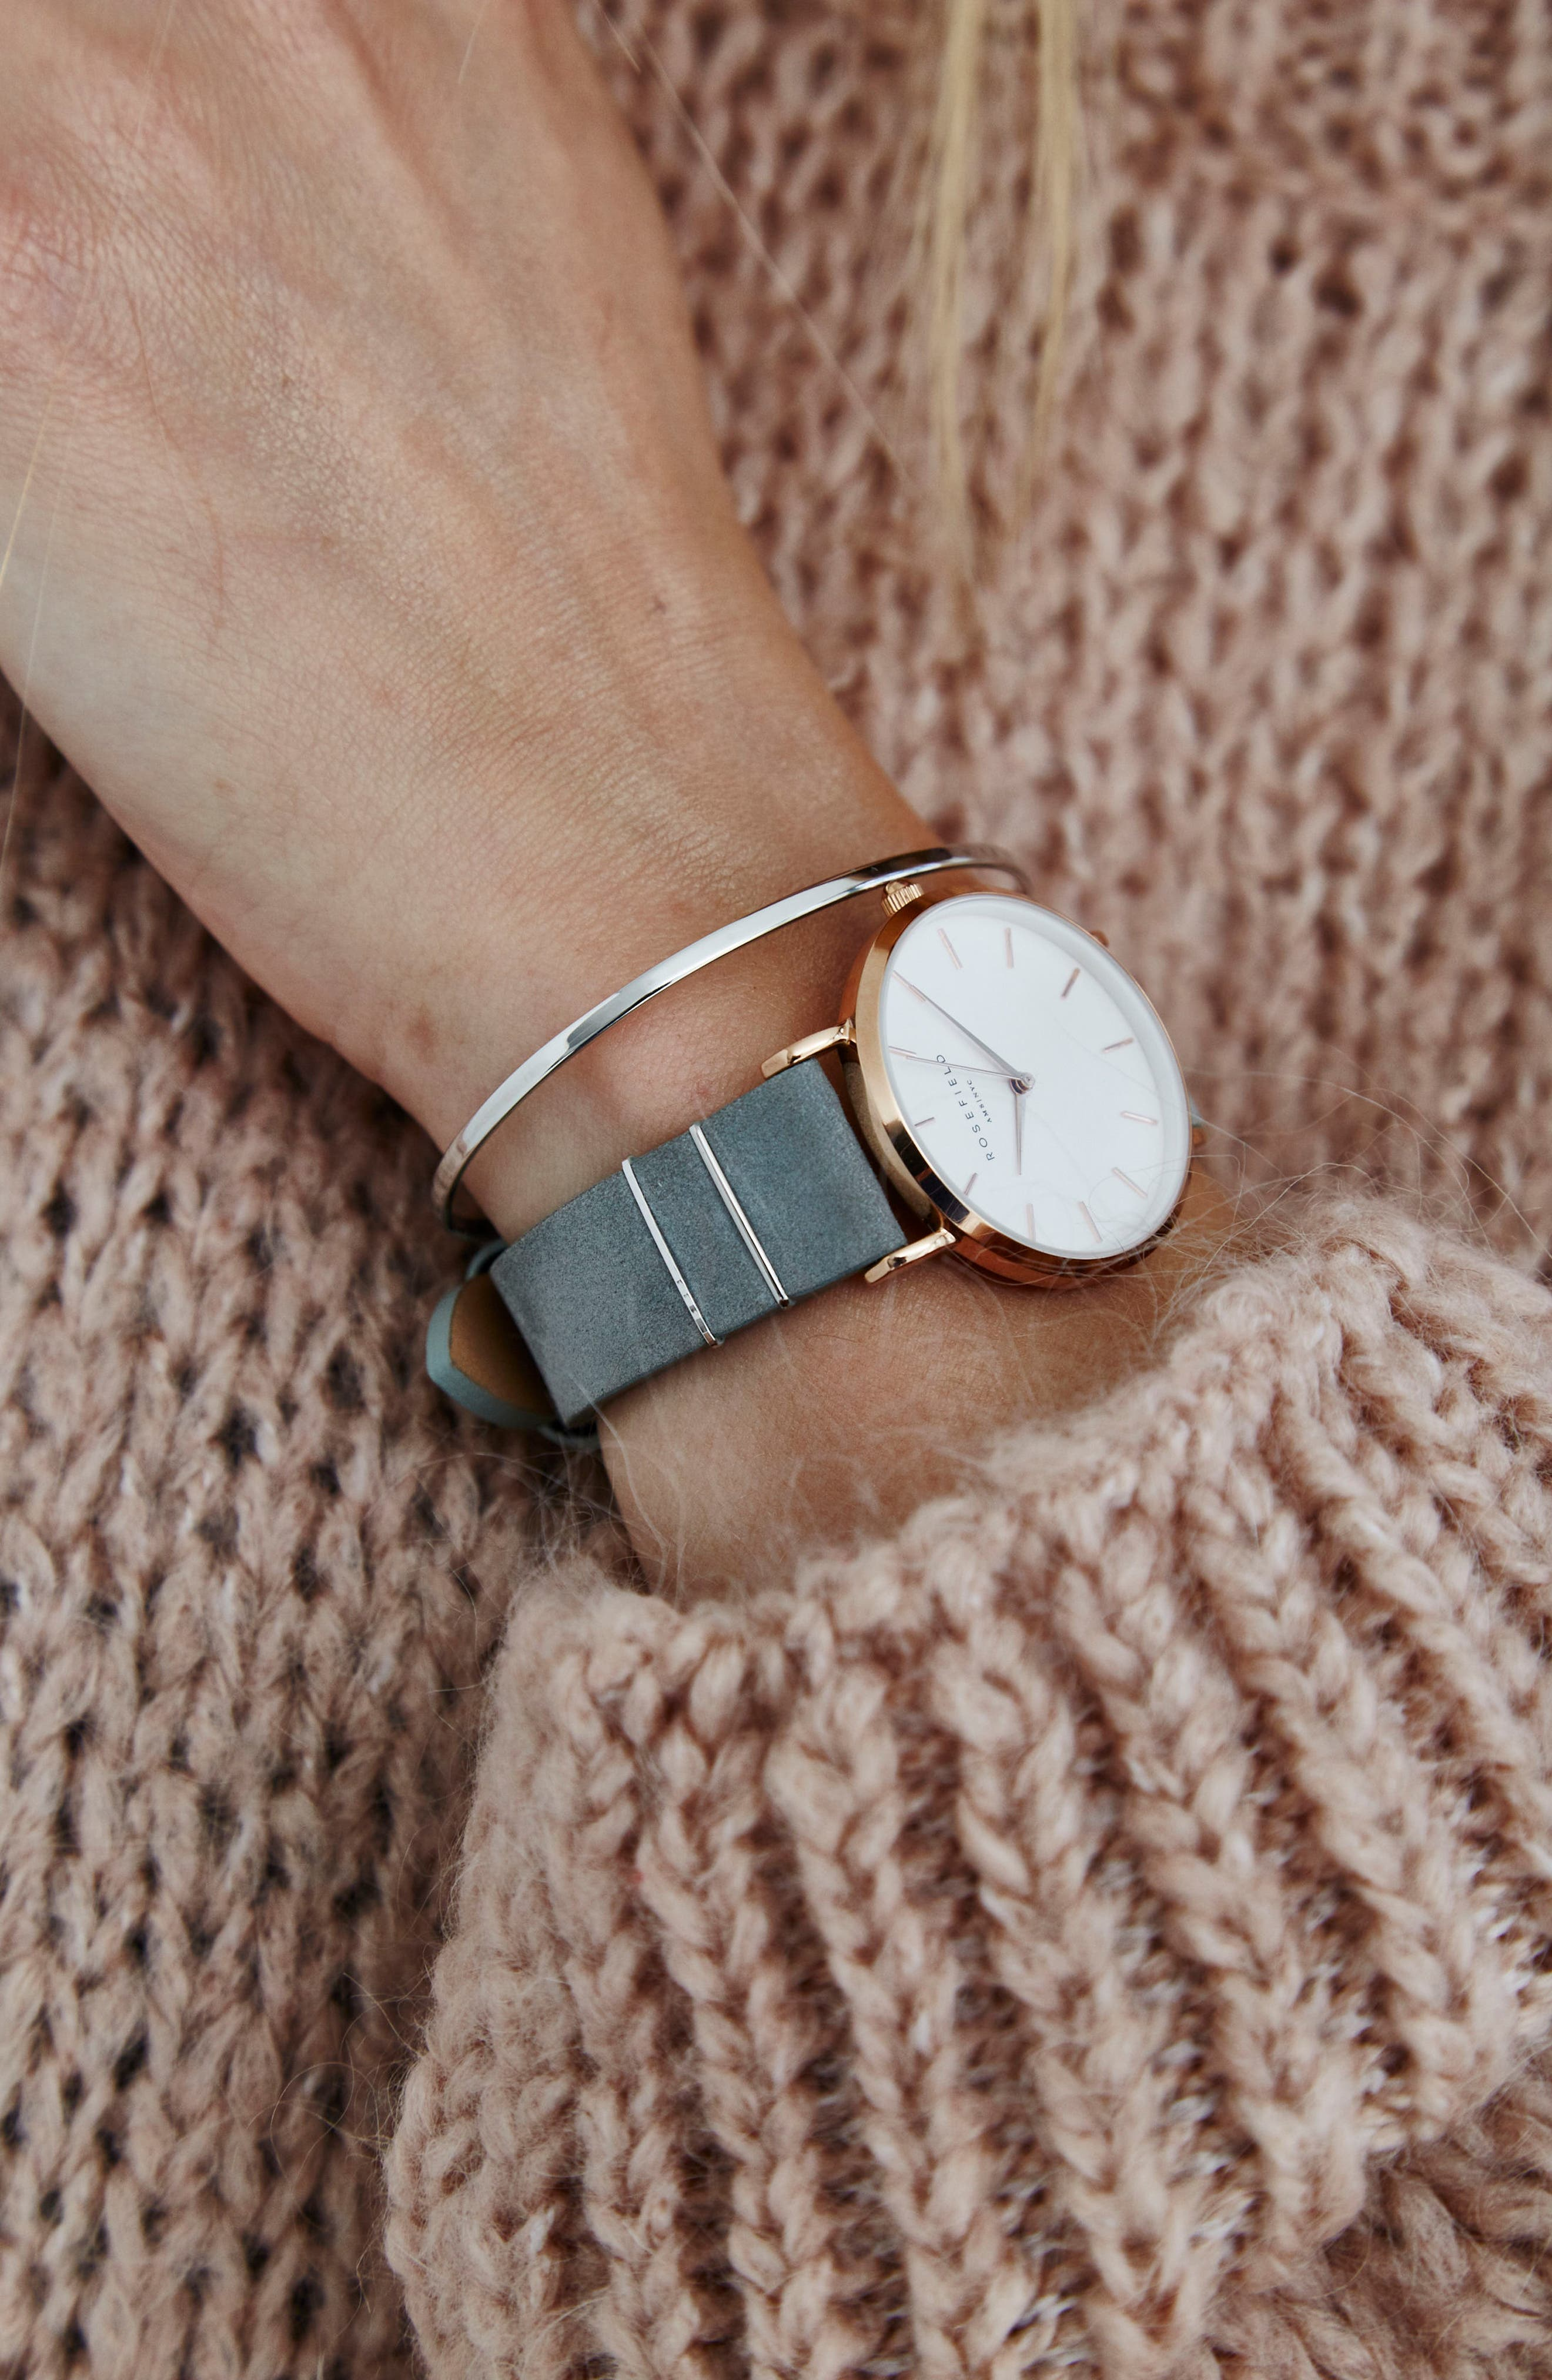 Holiday Leather Strap Watch & Bracelet Gift Set, 33mm,                             Alternate thumbnail 6, color,                             GREY/ ROSE GOLD/ SILVER